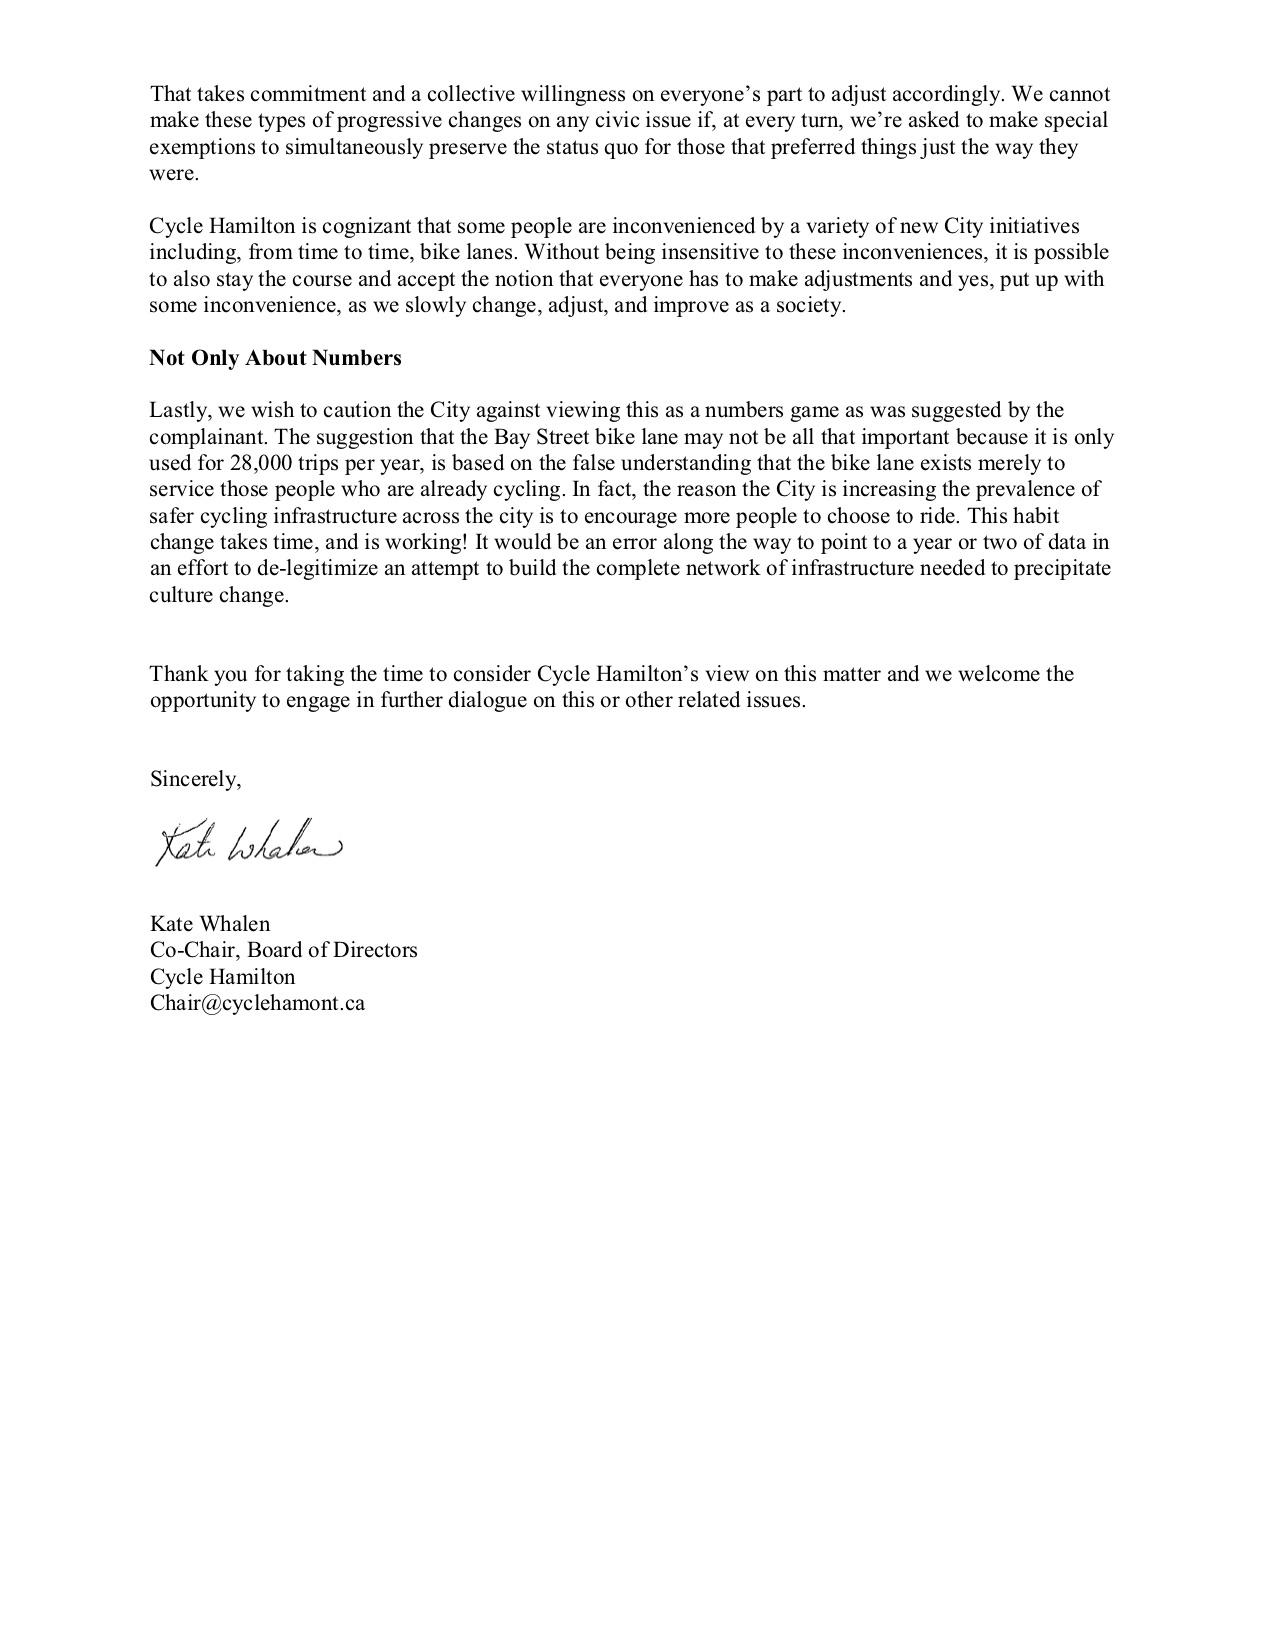 Cycle Hamilton's Response to Motion about Bay Street North